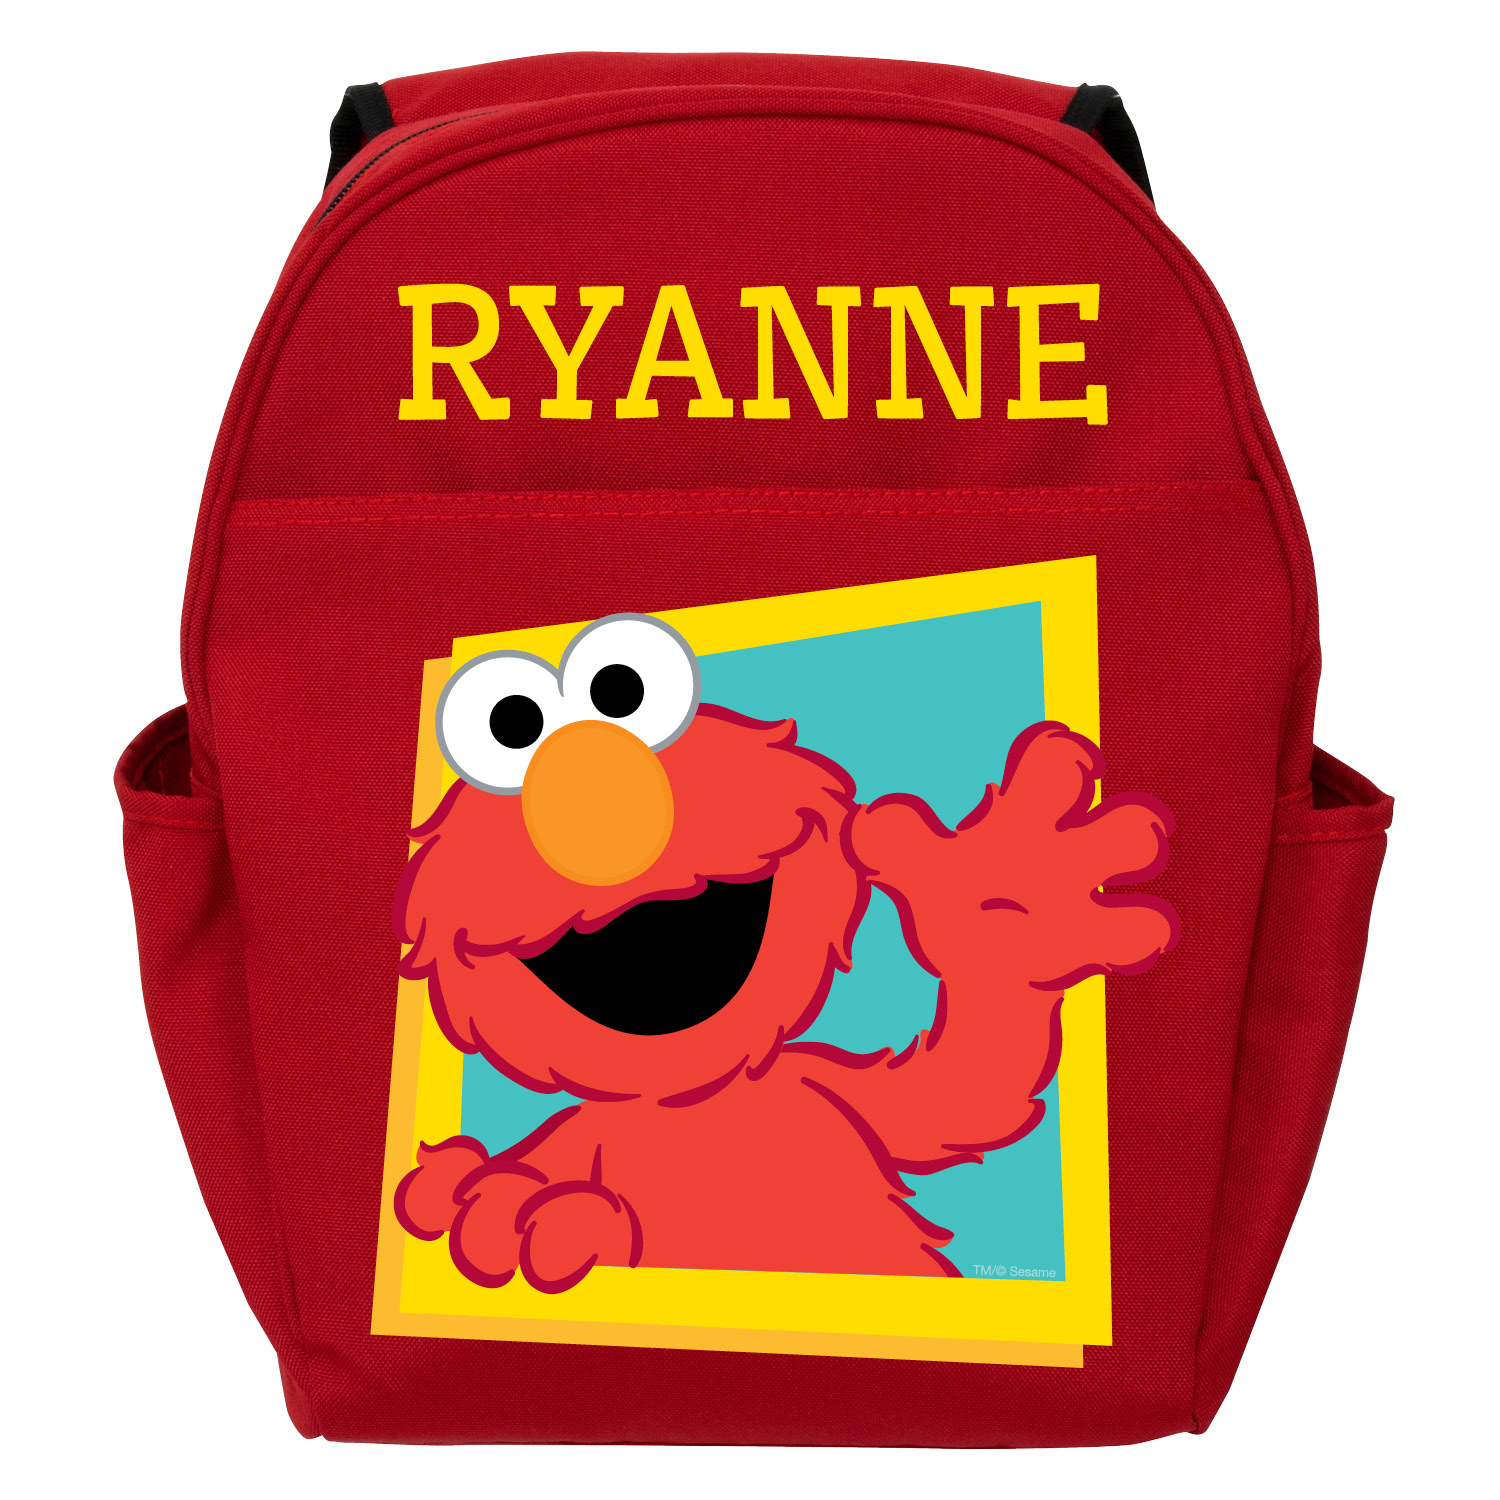 Bookbag clipart organized backpack. Sesame street hello elmo